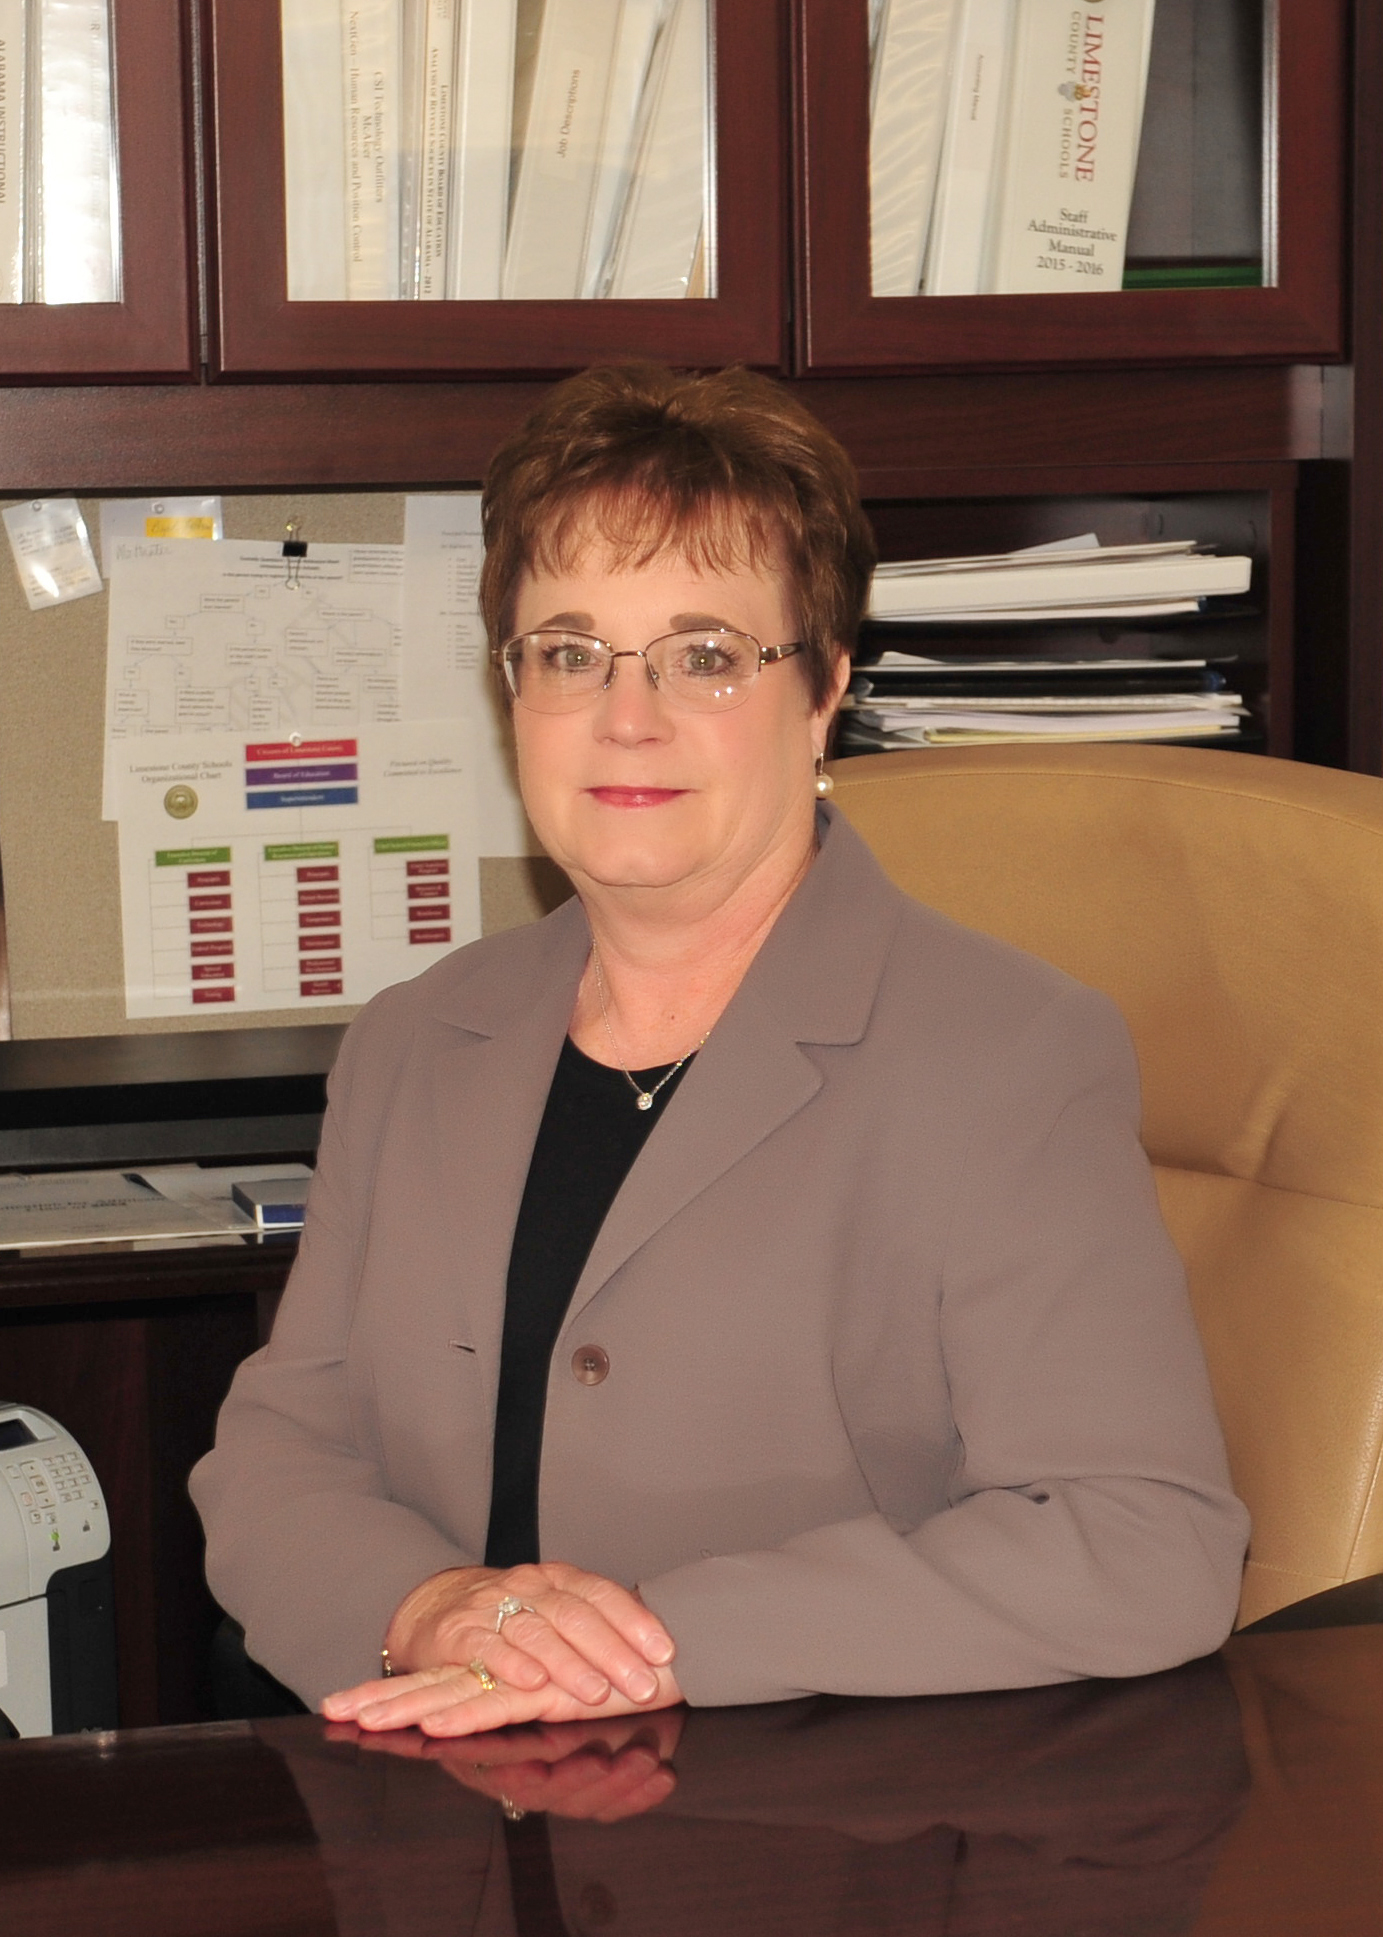 Teresa Rogers, Director of Child Nutrition